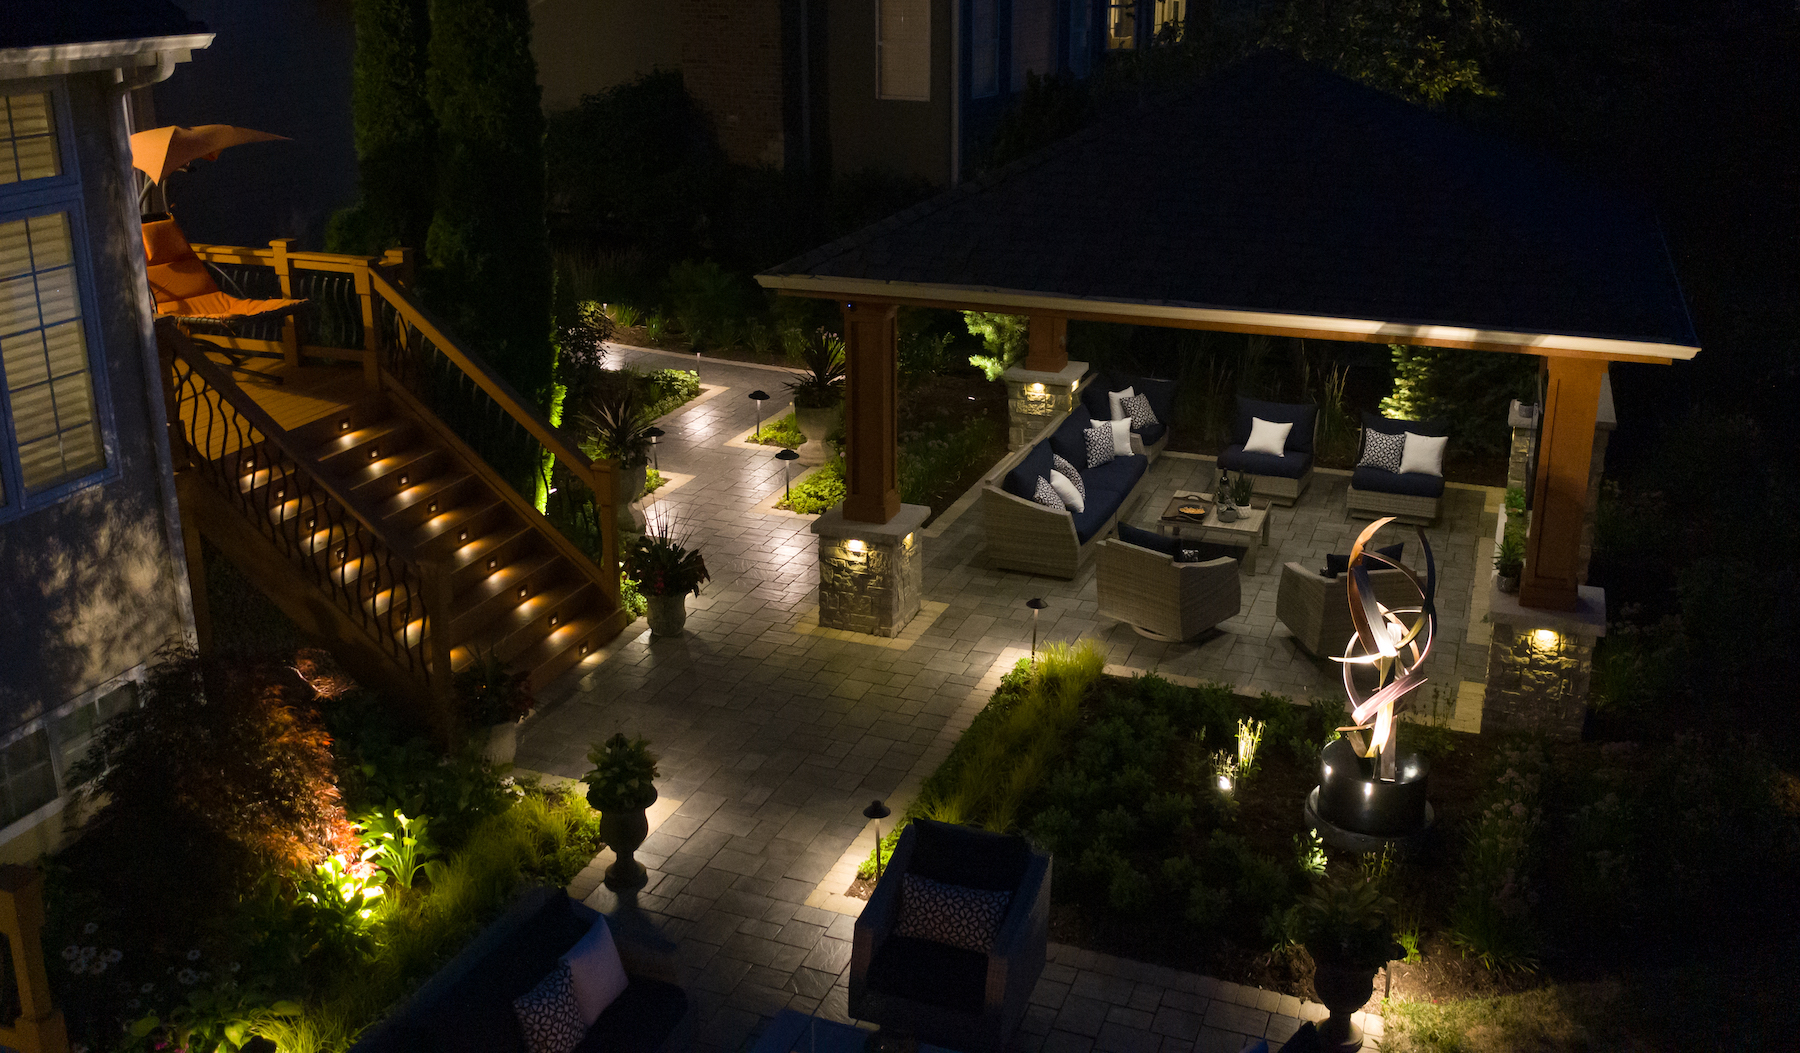 Landscape Lighting Design Ideas: Where to Place The Lights and Much More